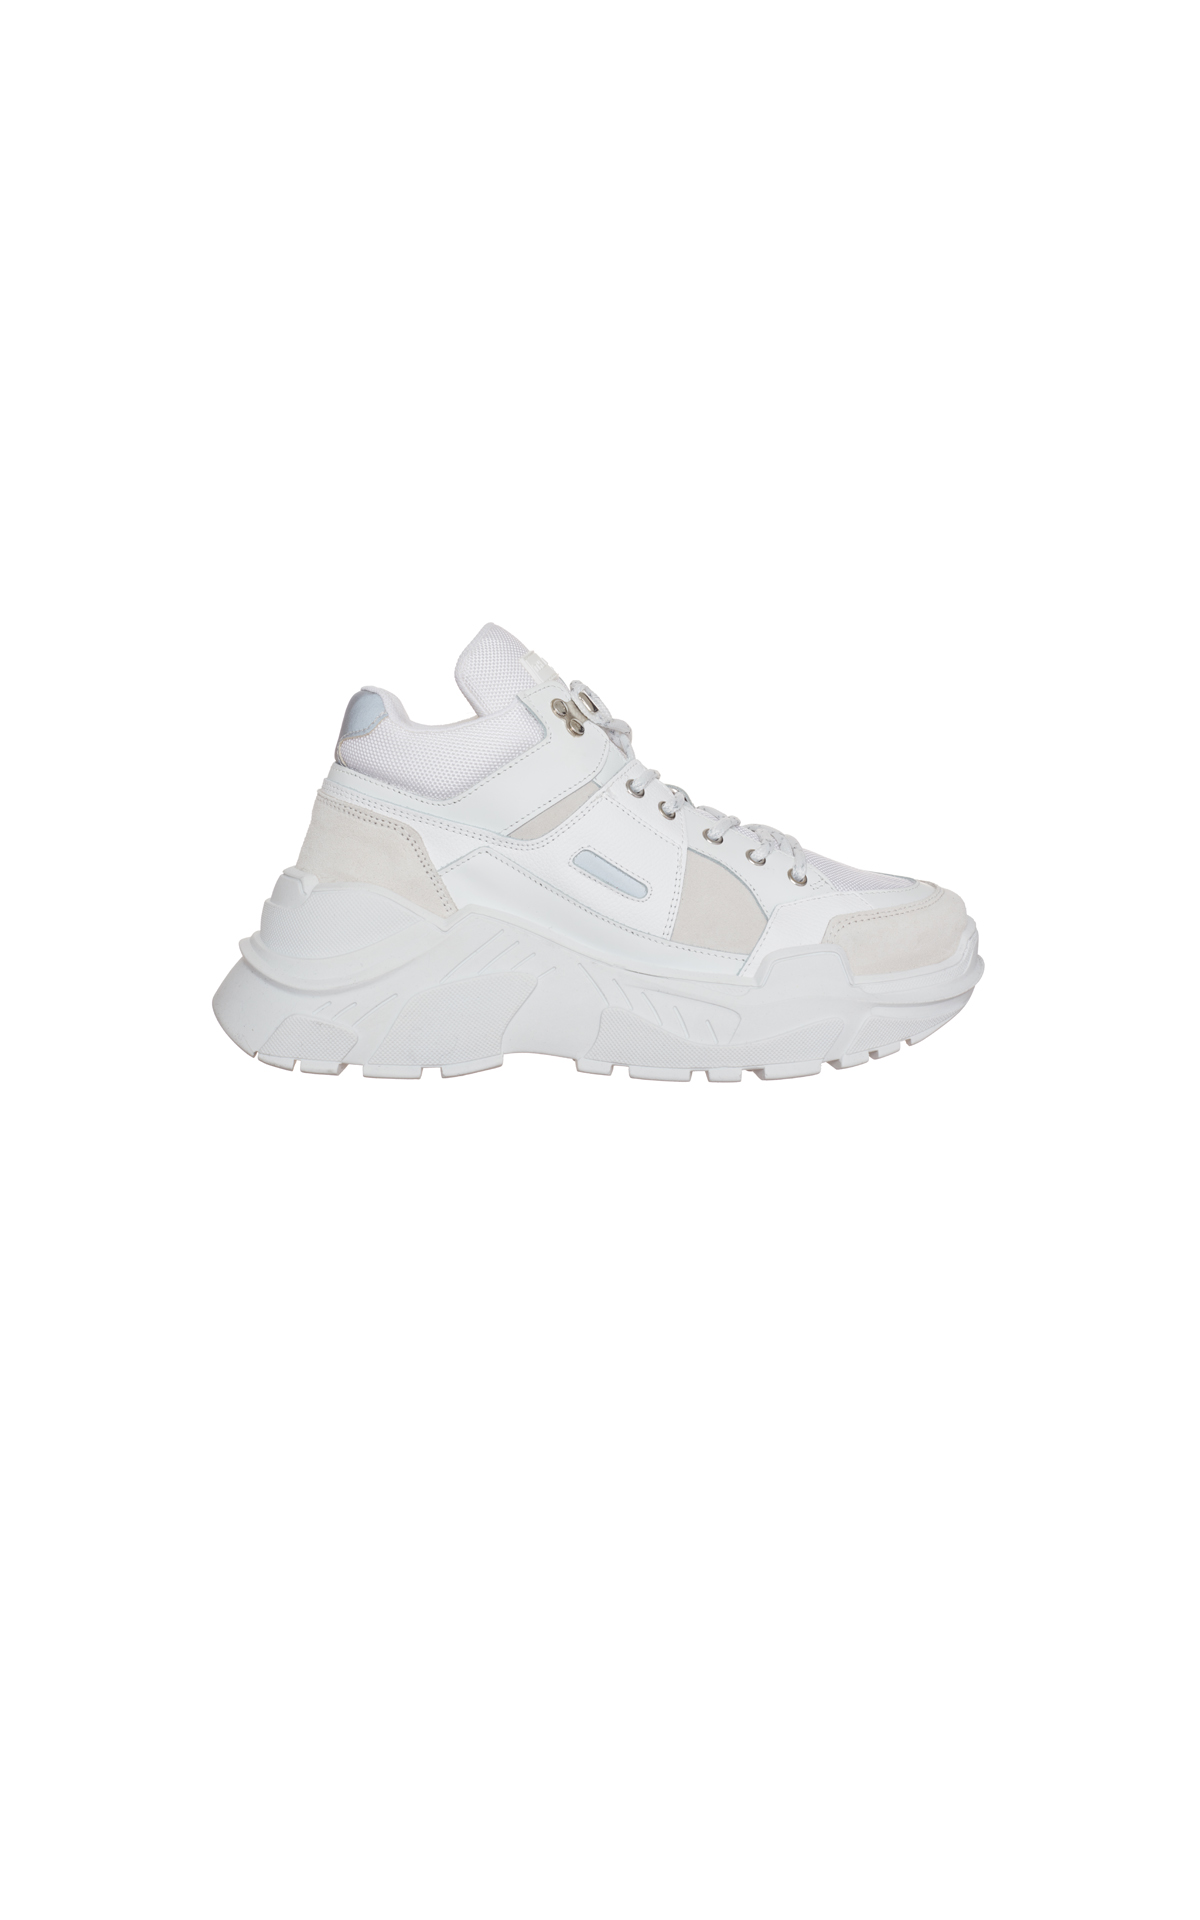 The Kooples Men's white trainers from Bicester Village